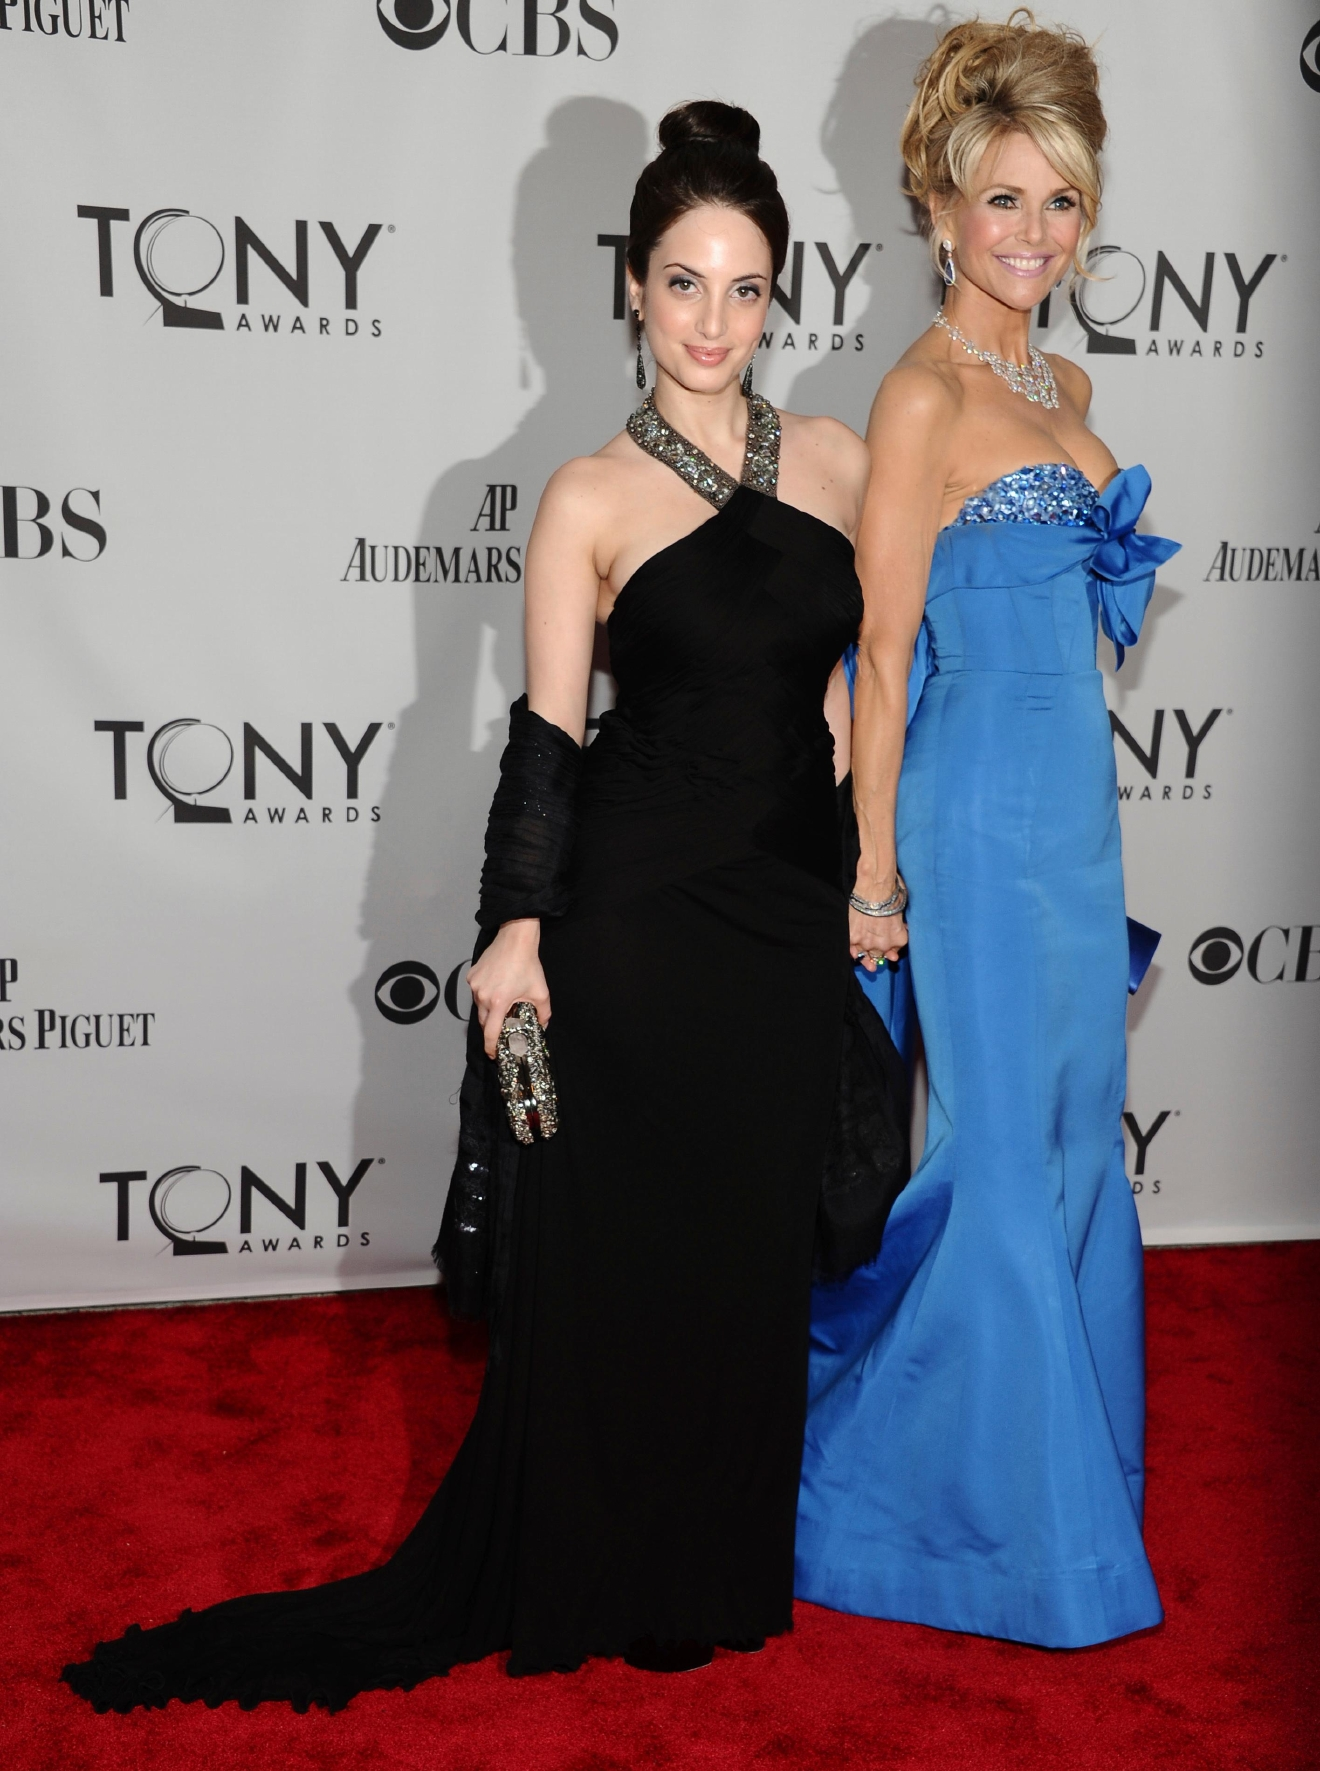 FILE - In this Sunday, June 12, 2011, file photo, Christie Brinkley, left, and her daughter Alexa Ray Joel arrive at the 65th annual Tony Awards, in New York. Christie Brinkley is returning to the pages of the Sports Illustrated Swimsuit issue at age 63 and this time she's also appearing with her two daughters. Brinkley will appear with her daughters, Joel and Sailor Brinkley Cook, in the issue coming out February 2017. (AP Photo/Charles Sykes, File)